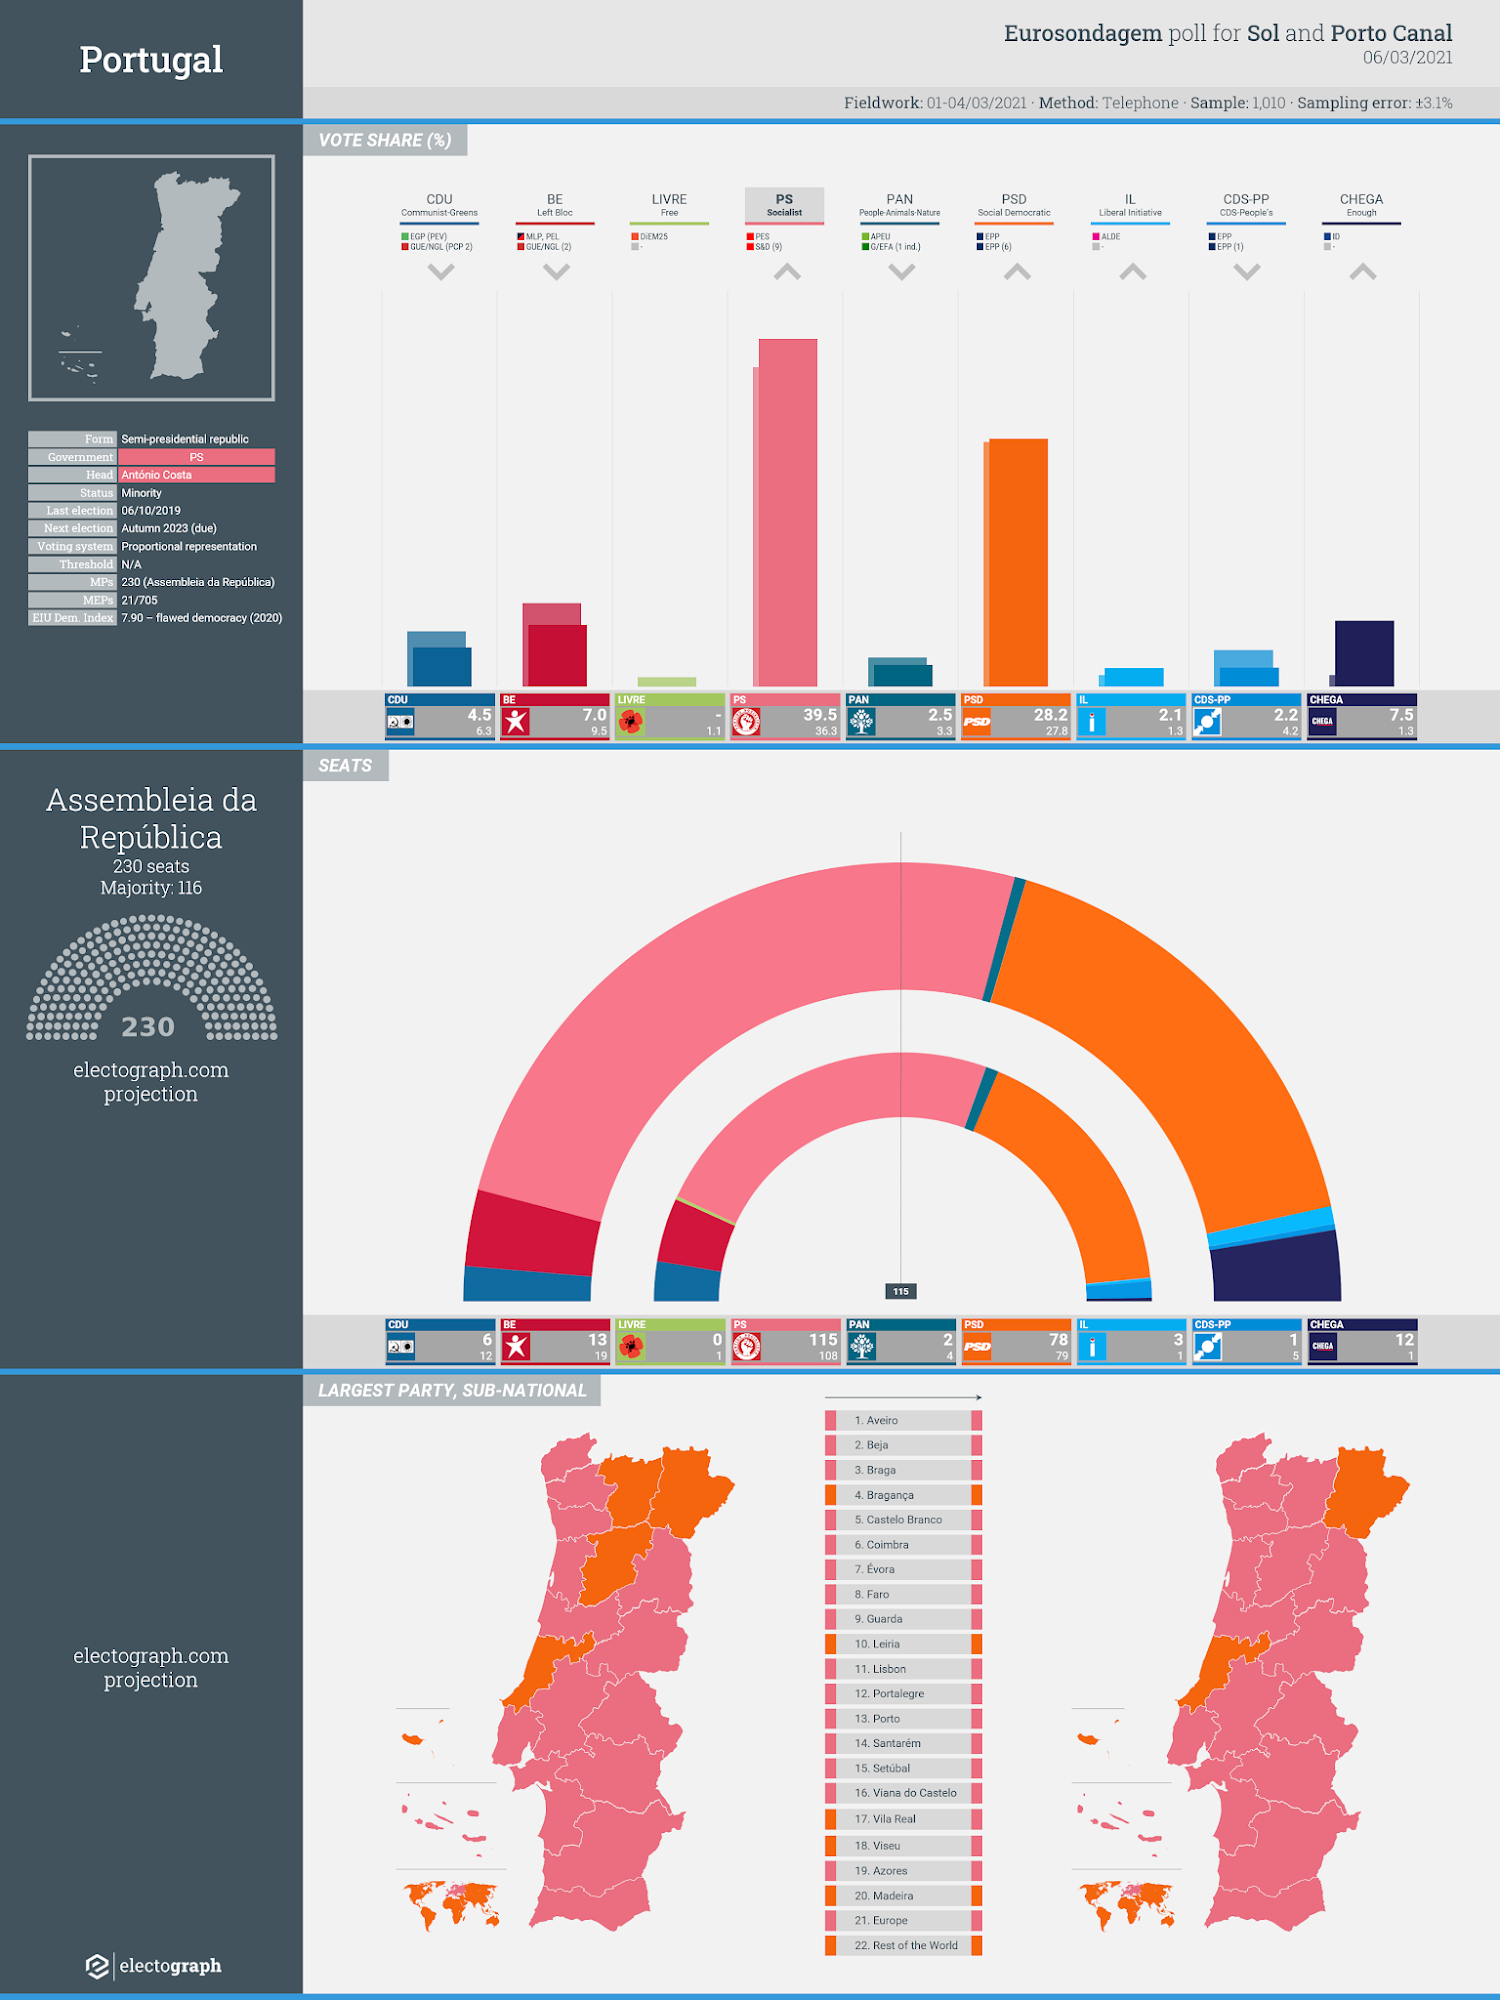 PORTUGAL: Eurosondagem poll chart for Sol and Porto Canal, 6 March 2021